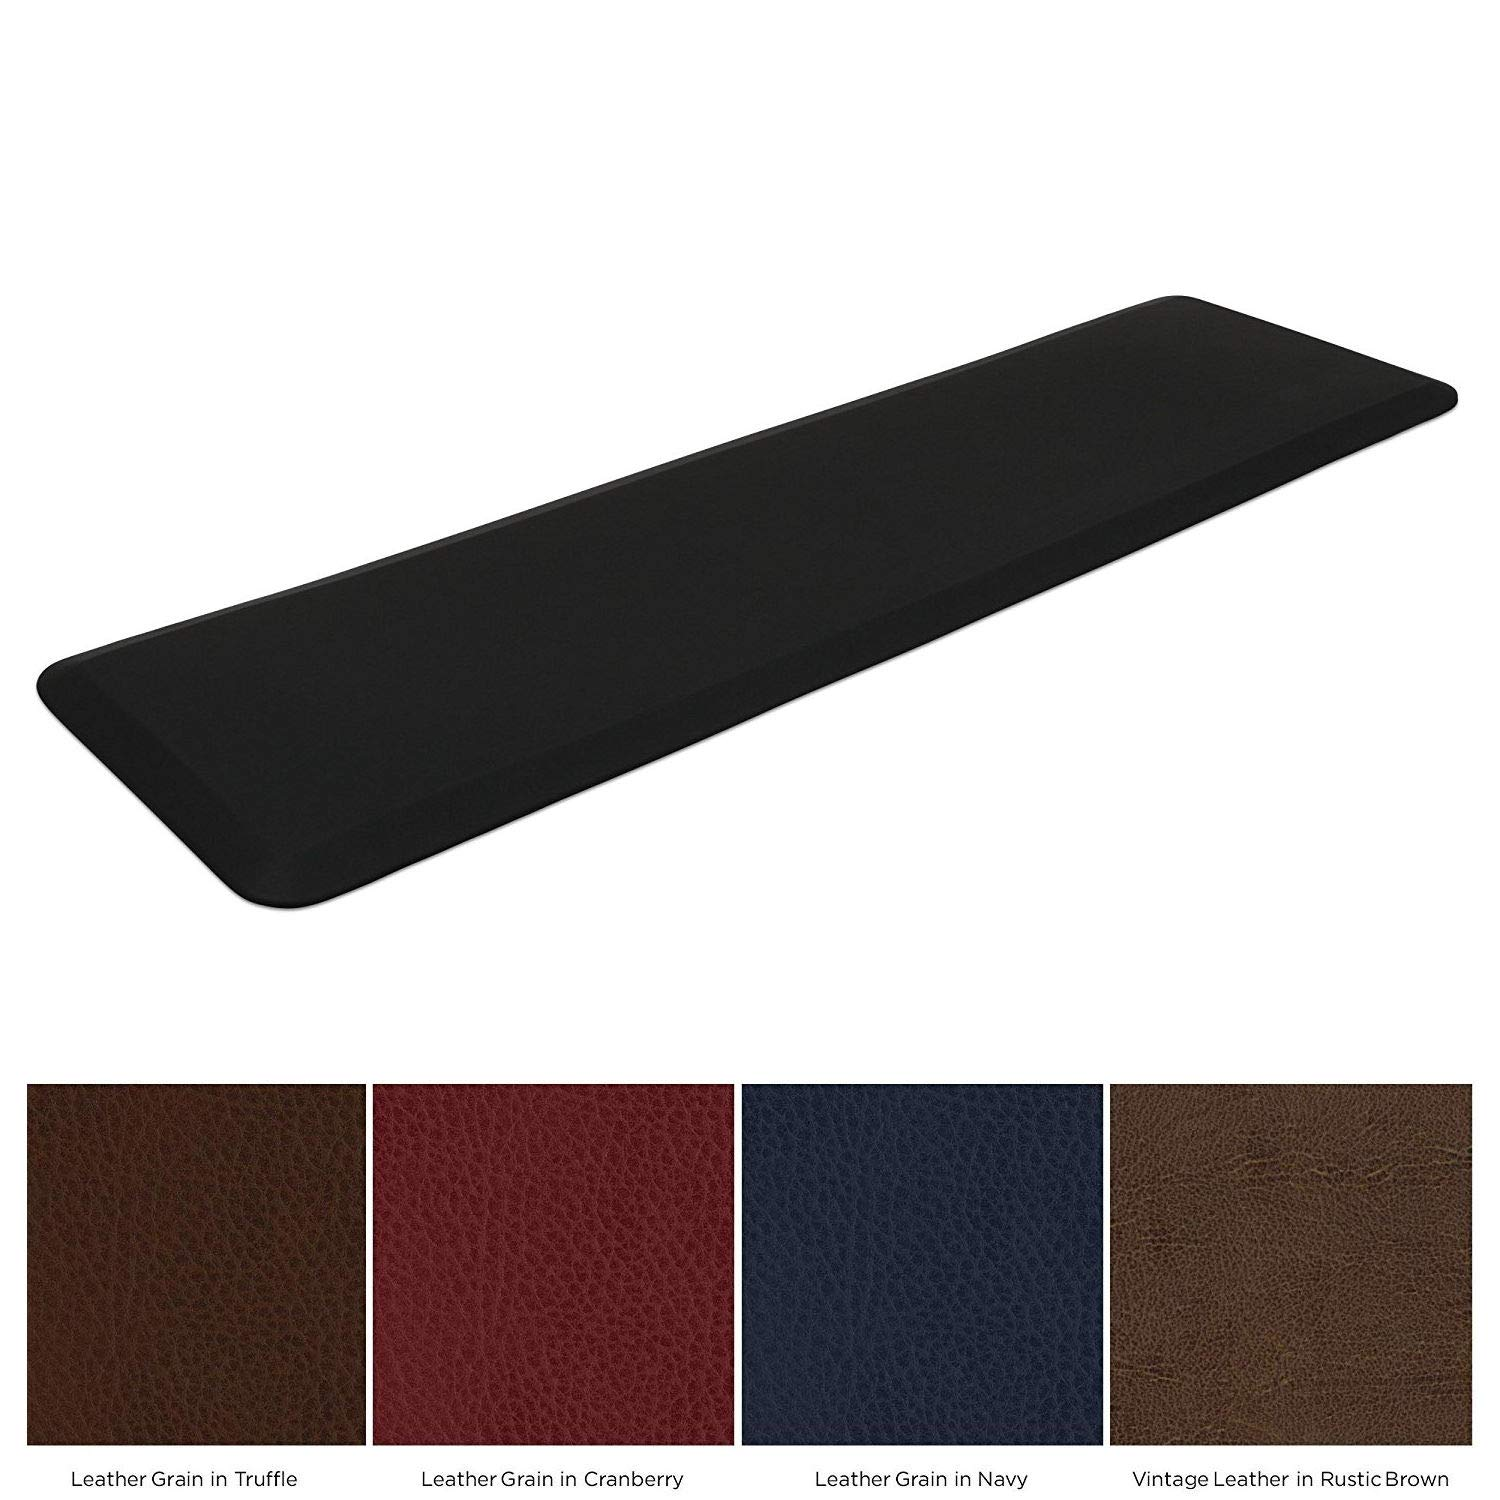 NewLife by GelPro Garage & Kitchen Utility Comfort 1/2'' Thick Anti-Fatigue Floor Mat, 20'' x 72'', Black by NewLife by GelPro